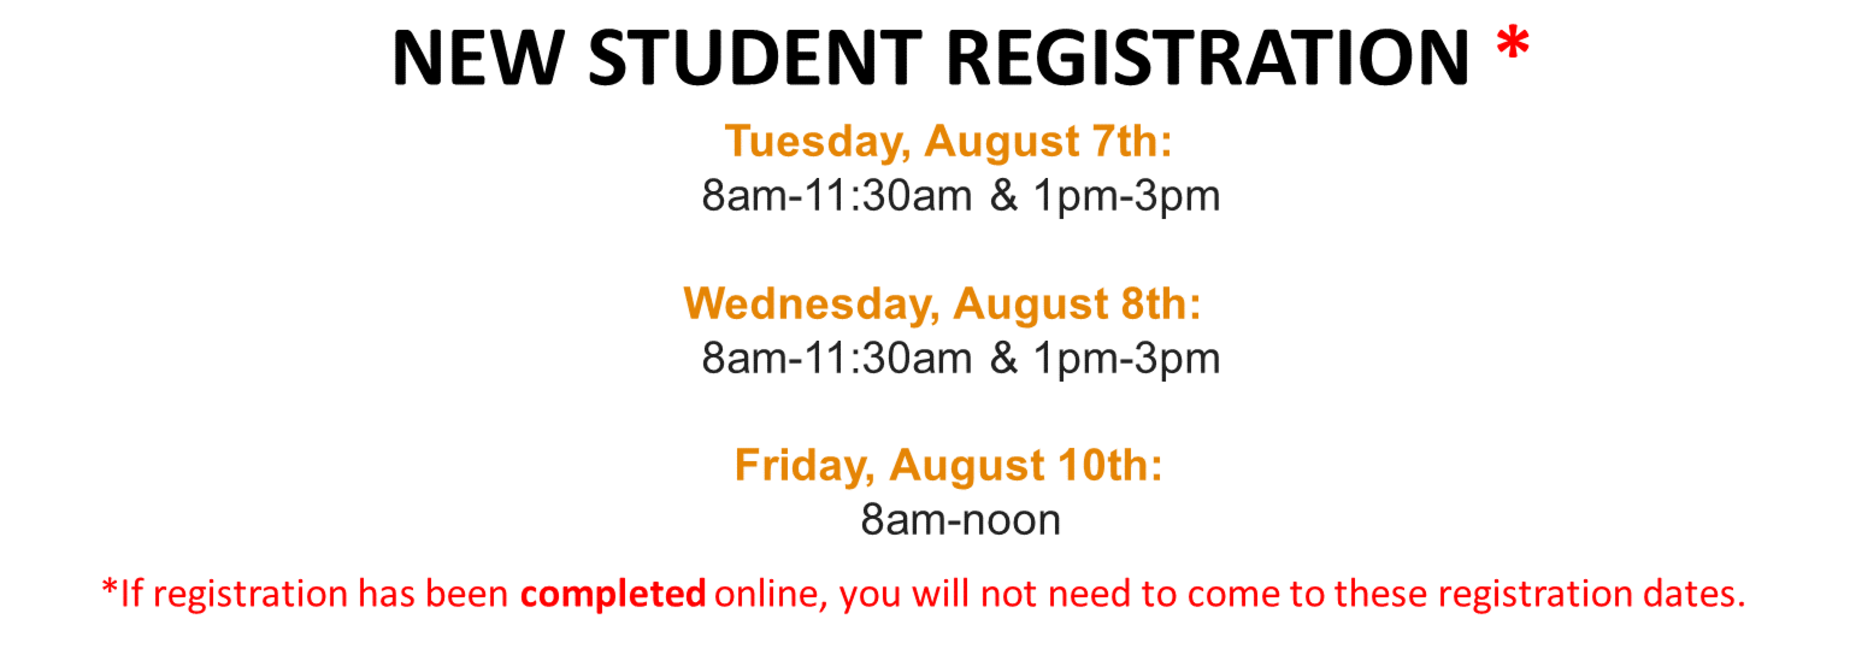 New Student Registration Dates